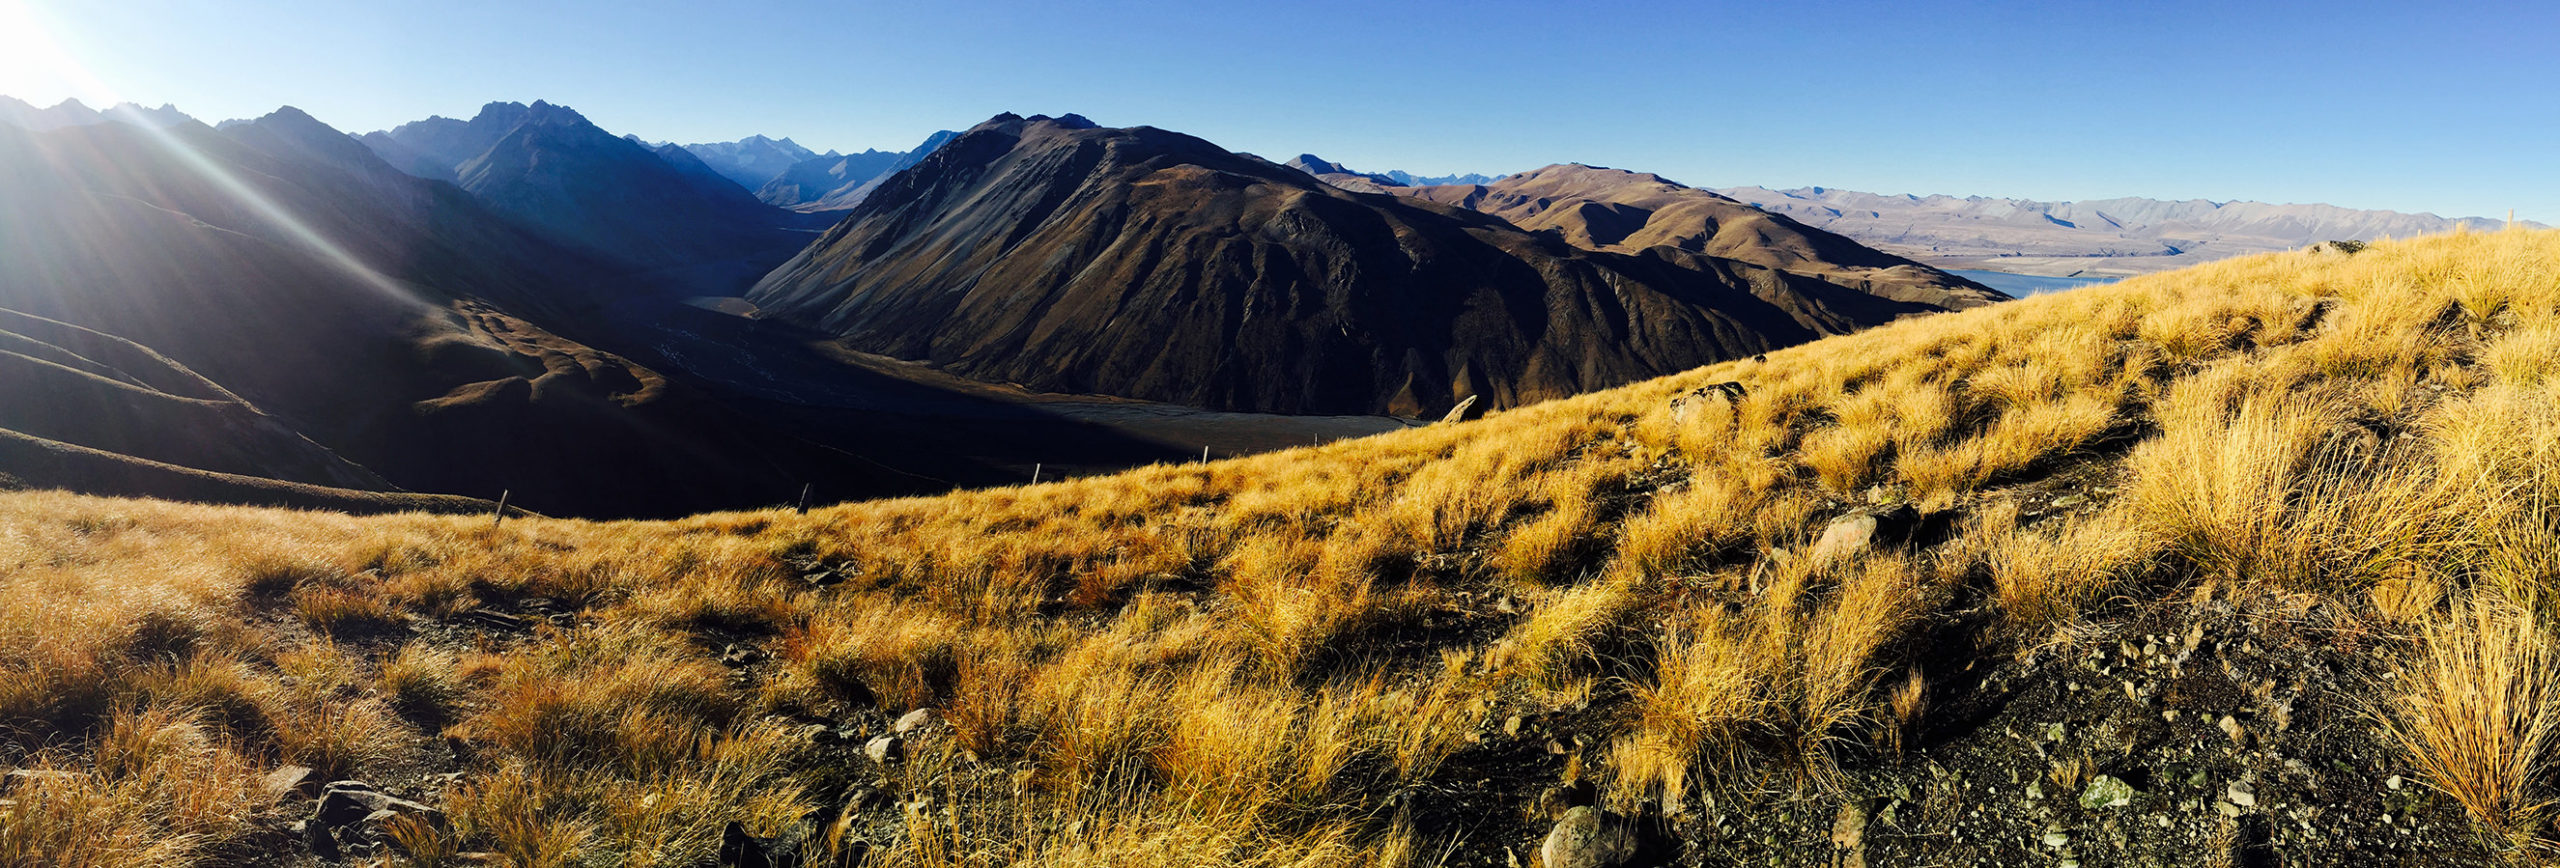 Mackenzie Basin New Zealand High